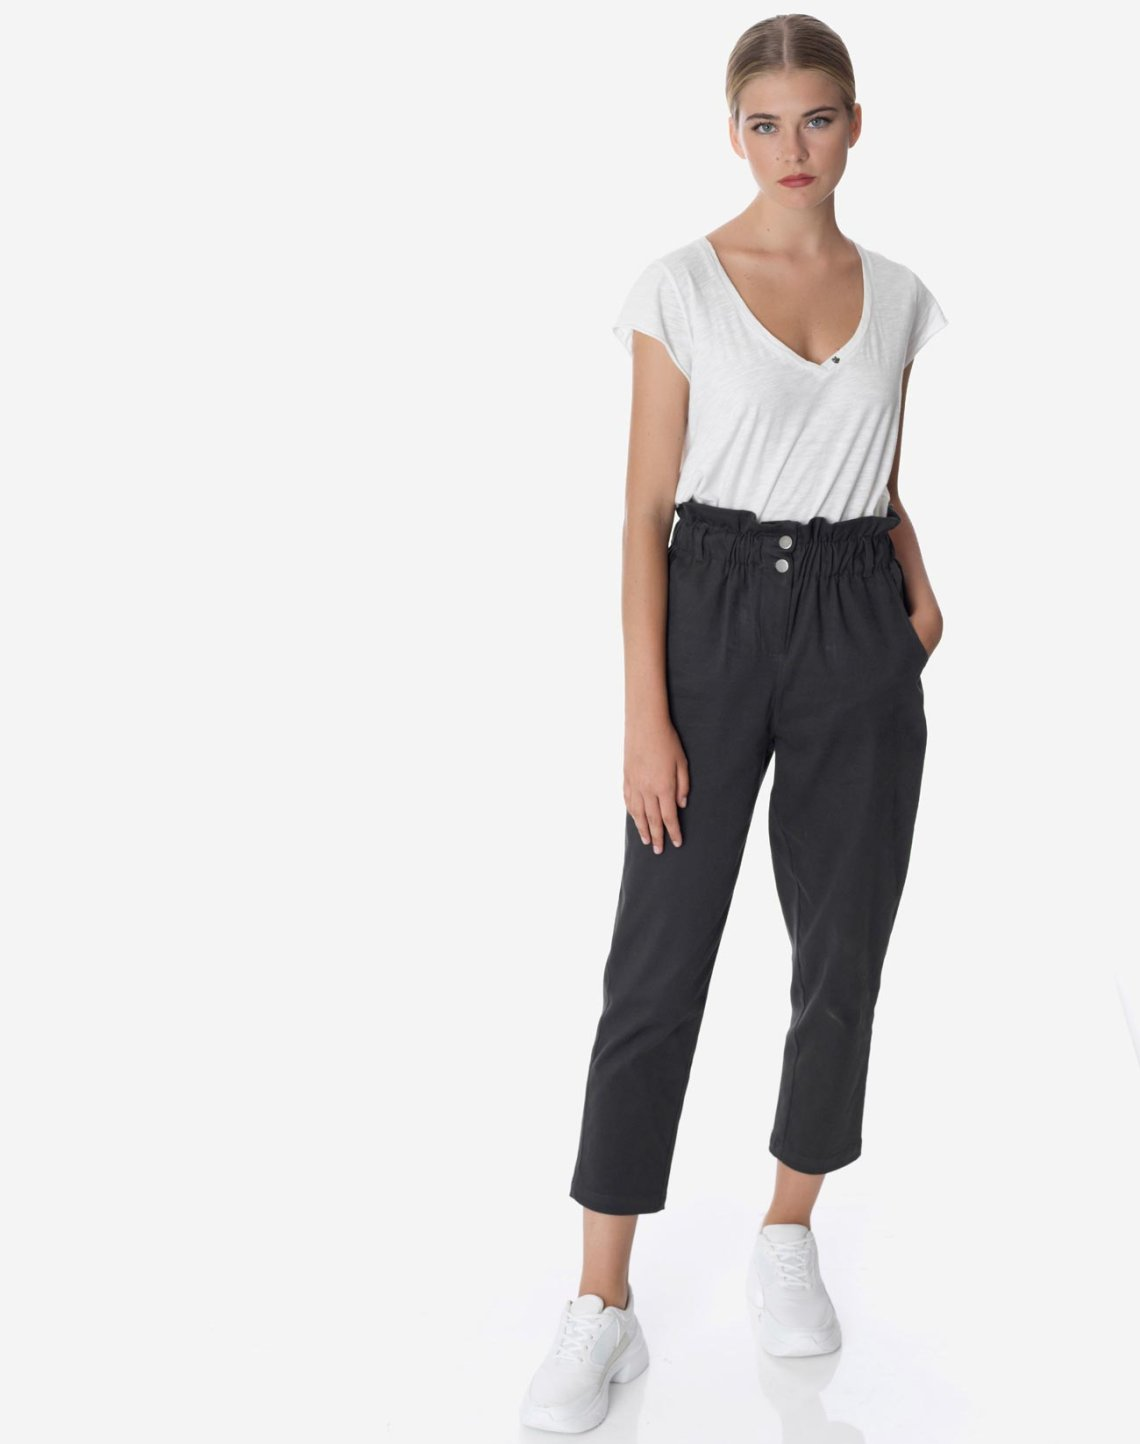 High waist baggy trousers